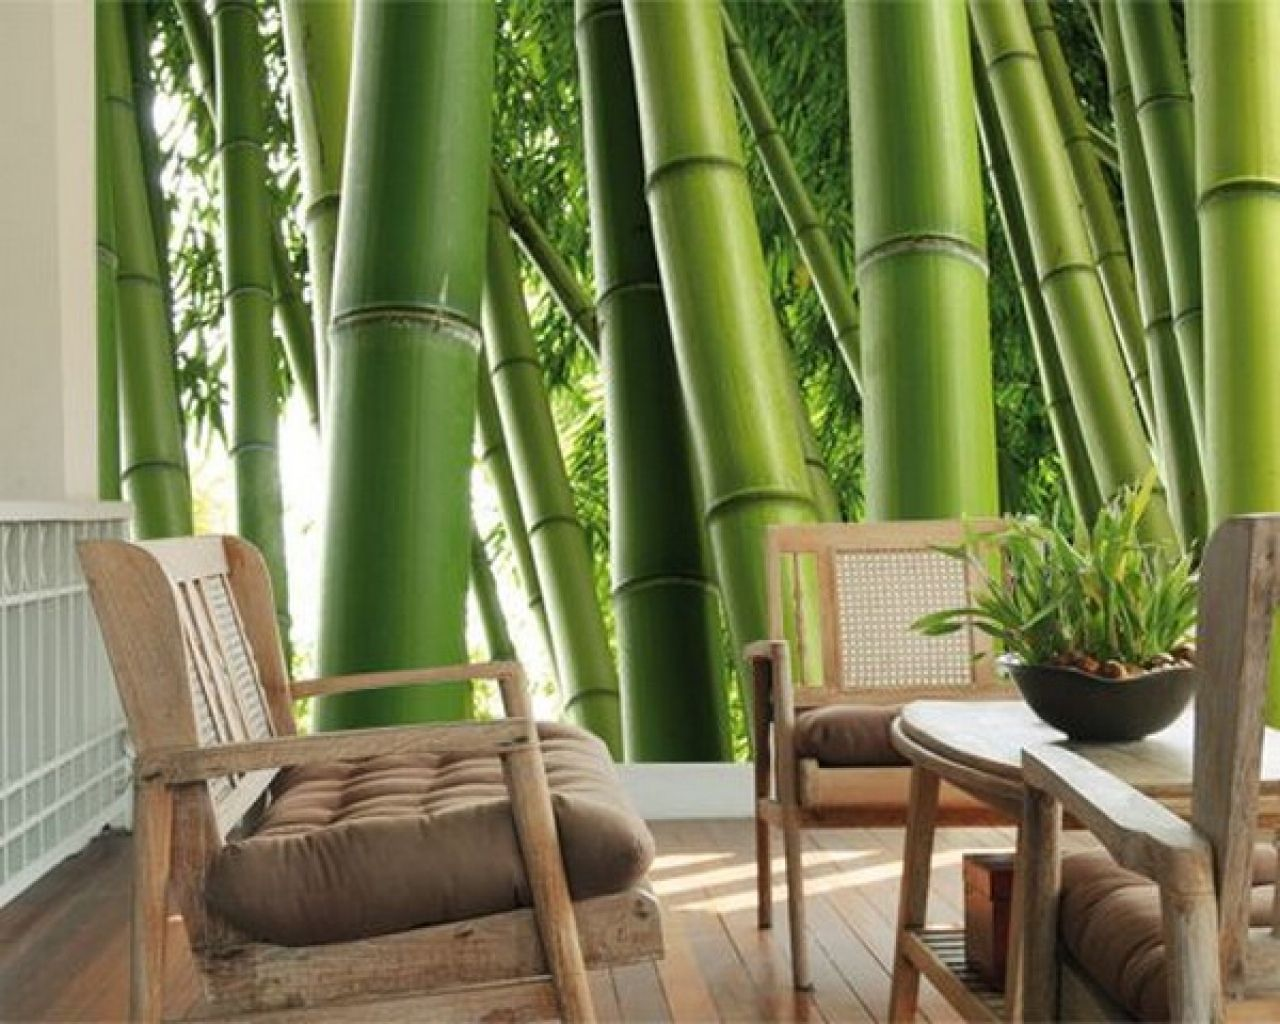 Tree Design Wallpaper Living Room Home Interiorsmall Living Room Decor With Stunning Green Bamboo